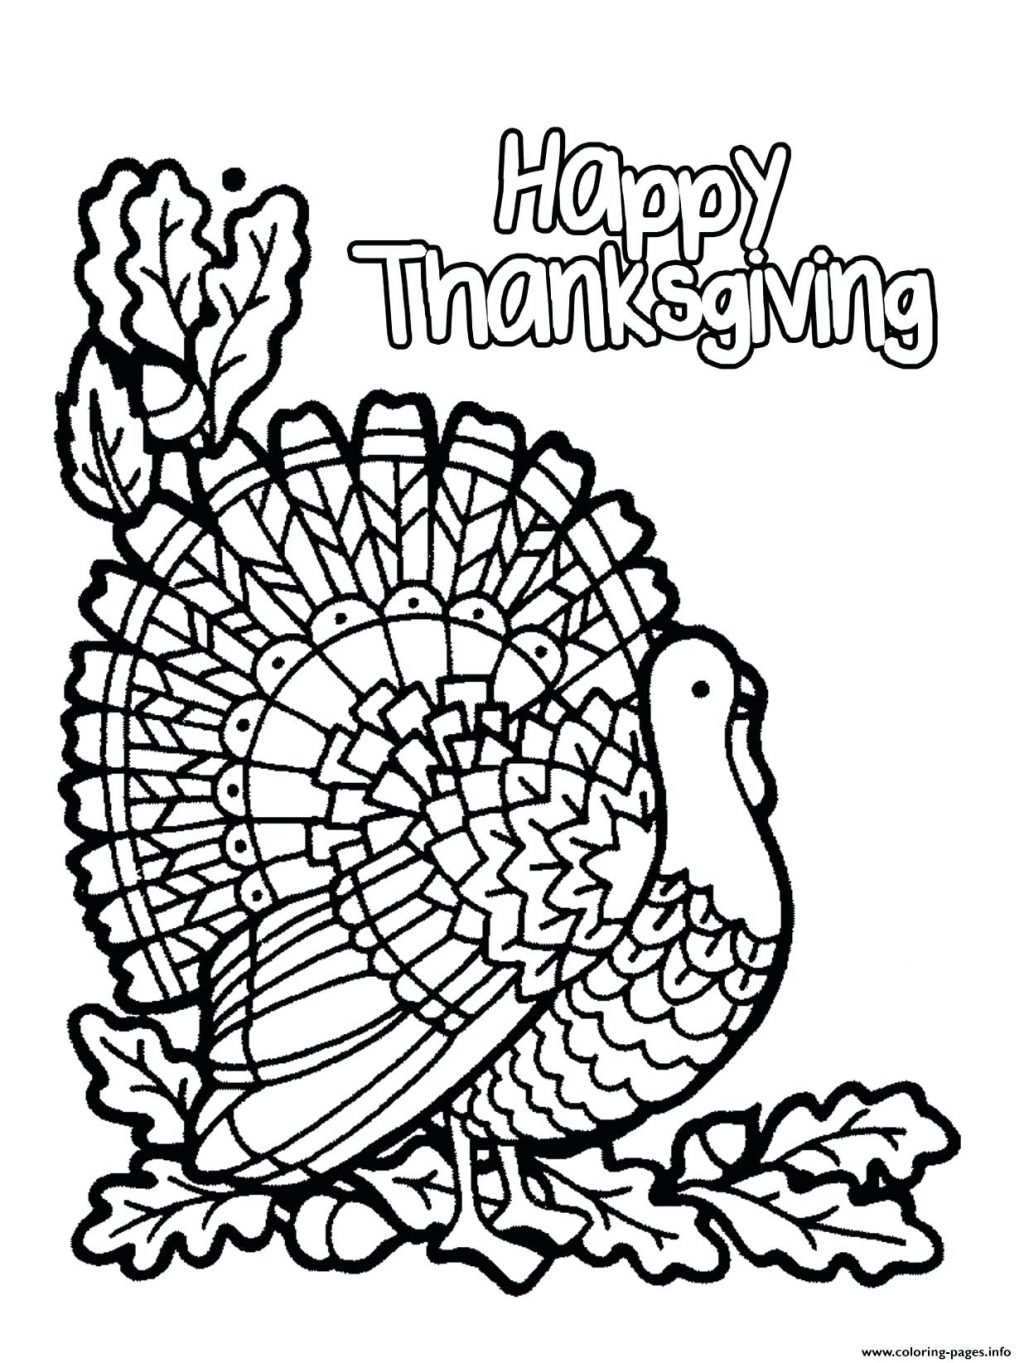 Turkey Head Drawing at GetDrawings.com | Free for personal use ...